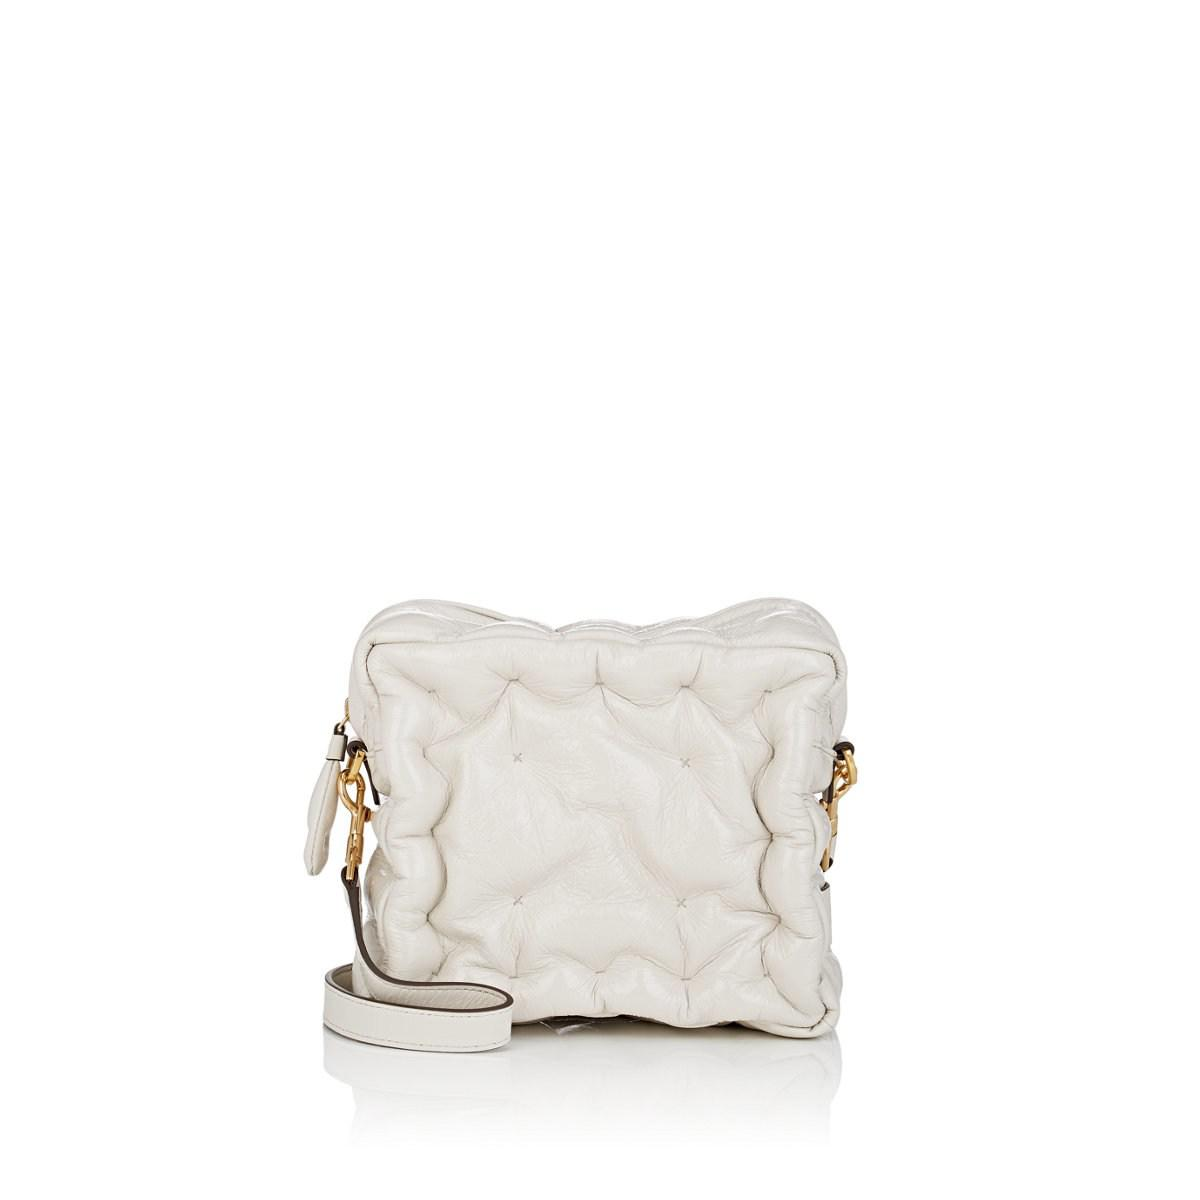 4a495a8f739f Anya Hindmarch Chubby Patent Leather Crossbody Bag in White - Lyst